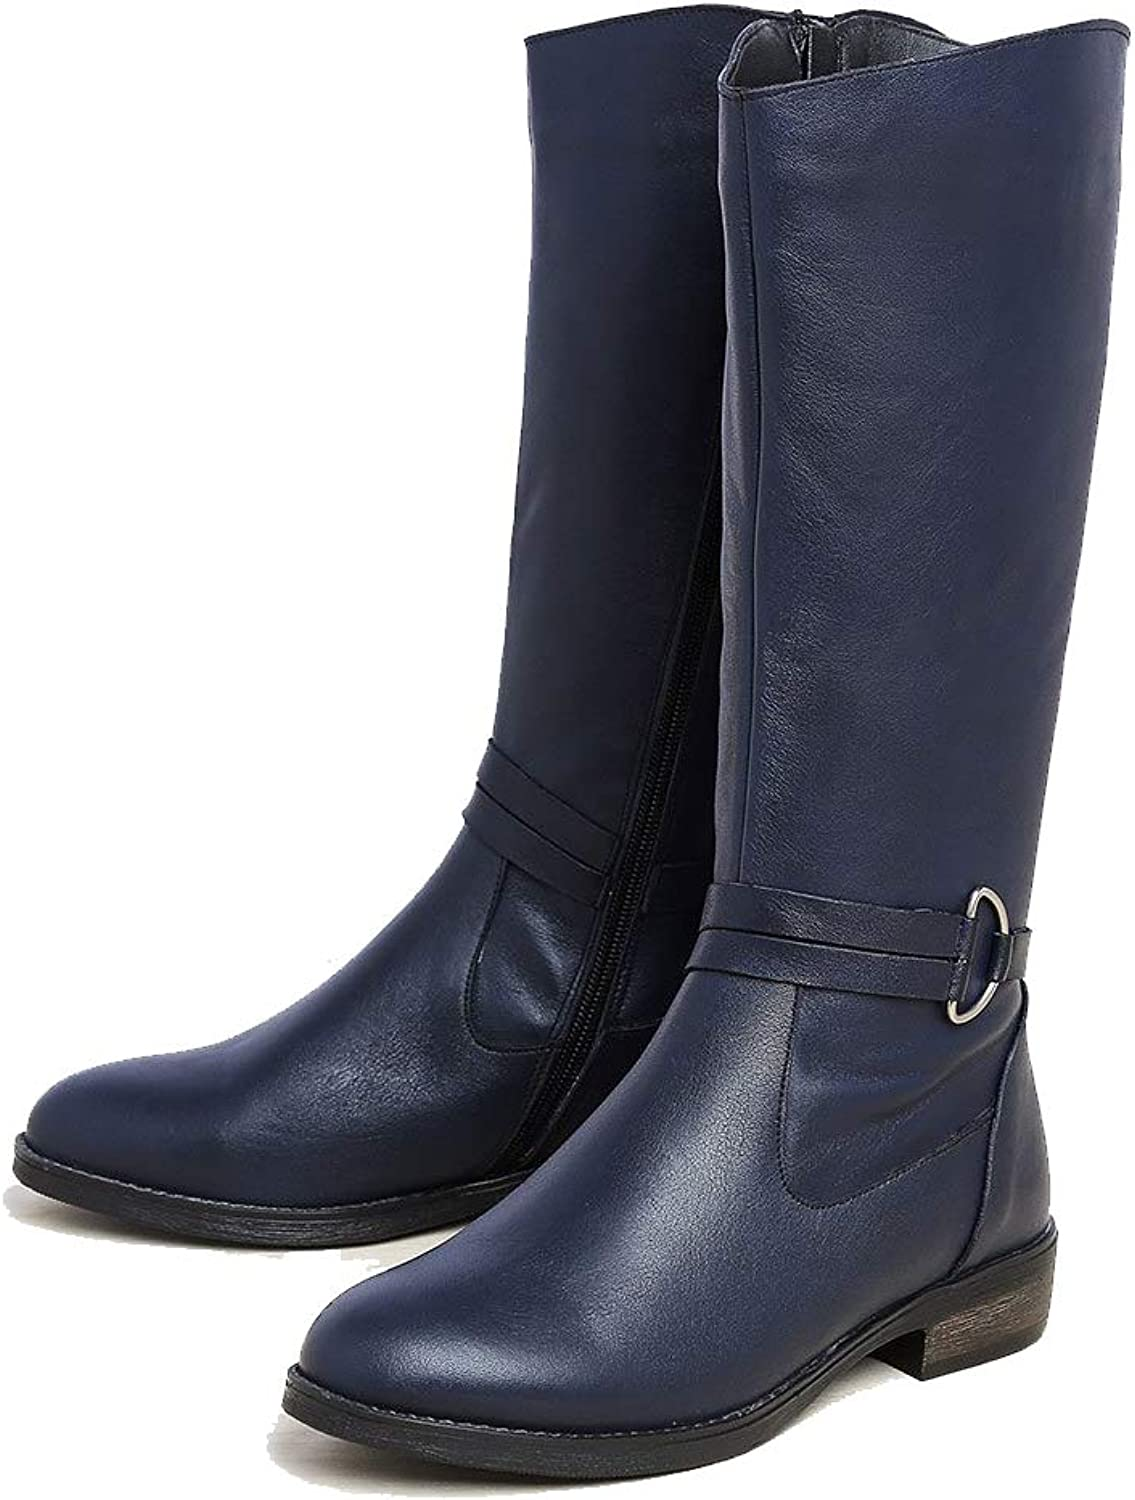 Bunique Sydney High Over The Knee, Leather Womens Boots for All Weathers, with Small Heel 0.7 inch.